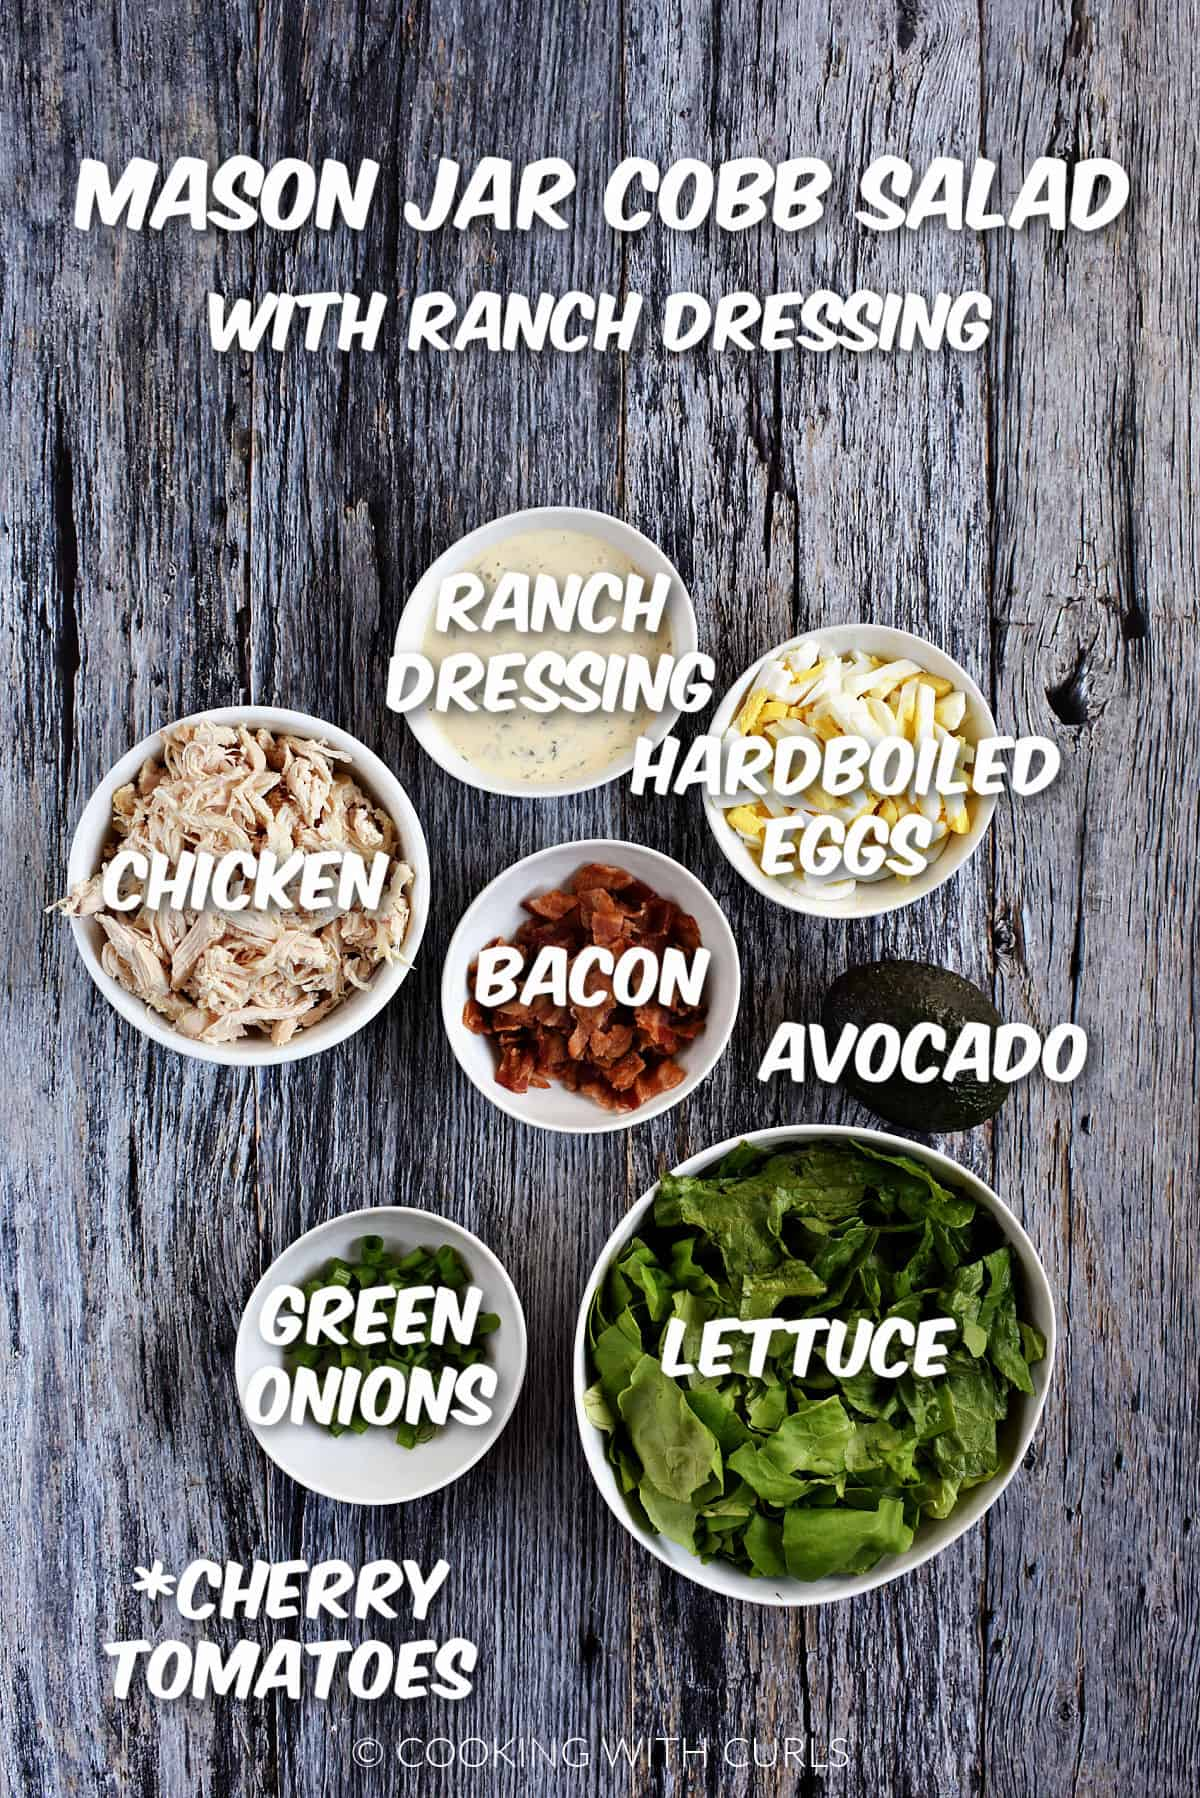 Ranch dressing, hardboiled eggs, avocado, bacon, chicken, green onions, and lettuce in white bowls and cherry tomatoes listed.